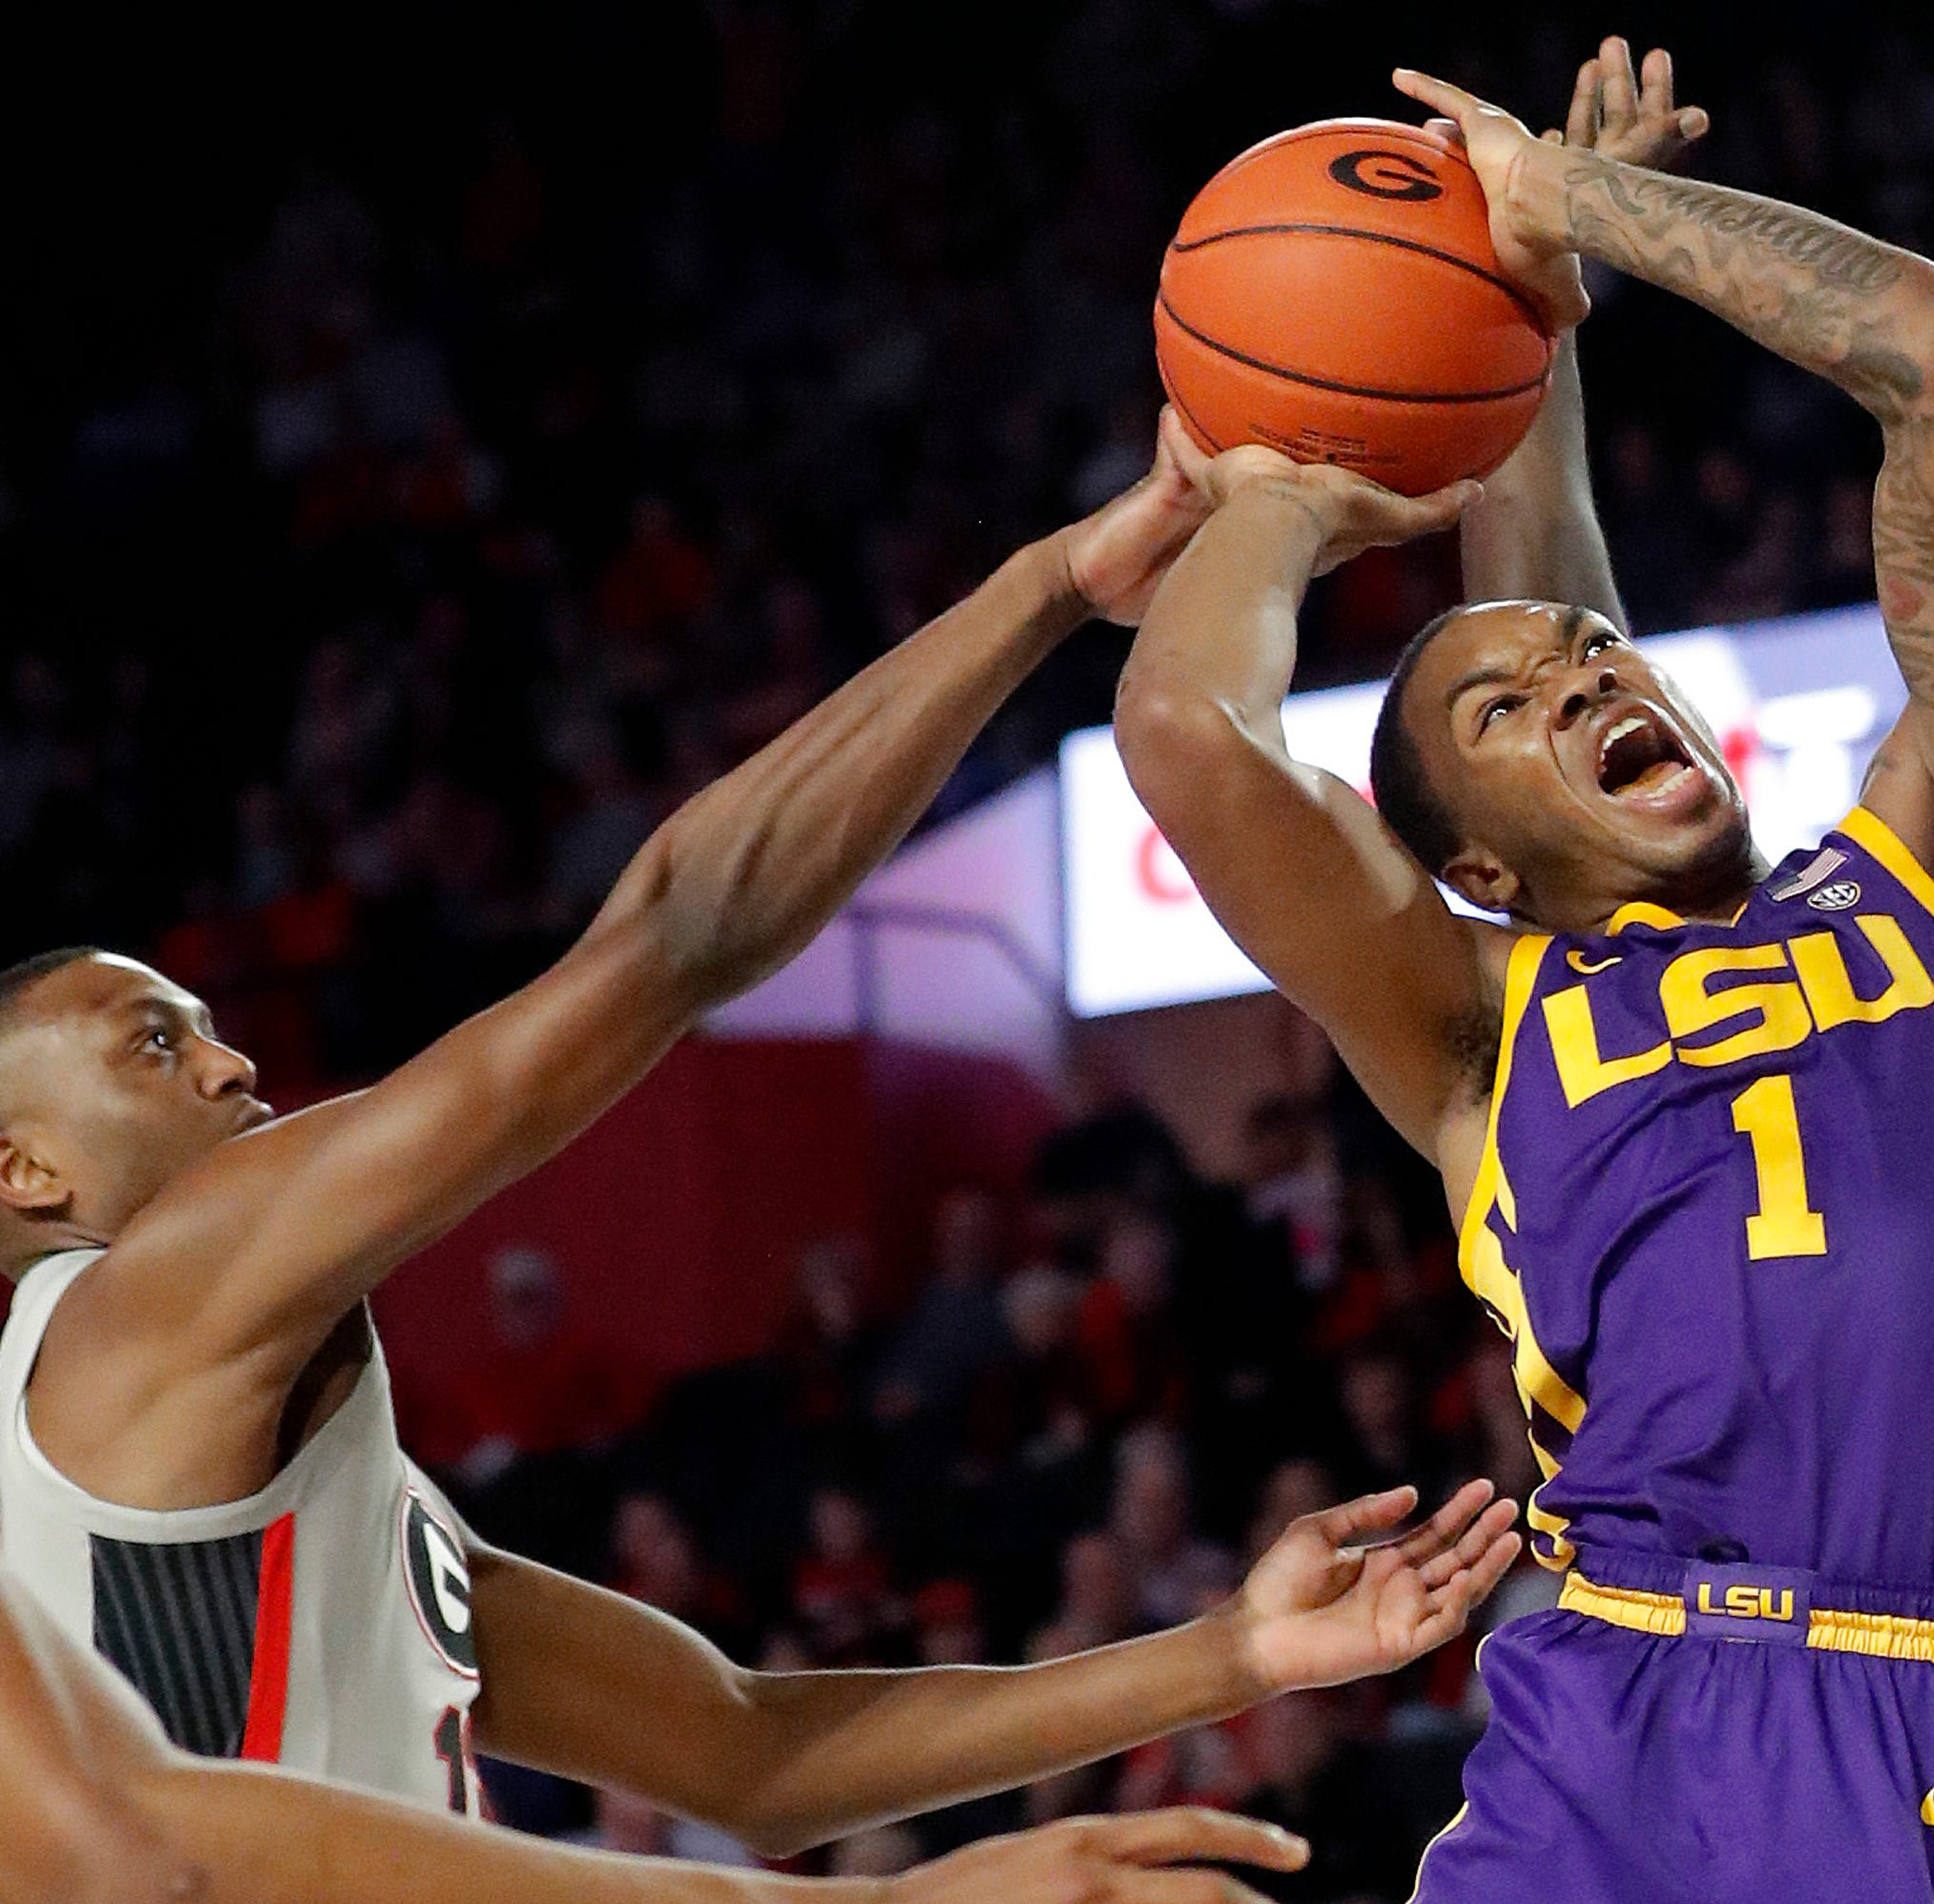 Waters, Smart lead No. 19 LSU over Georgia